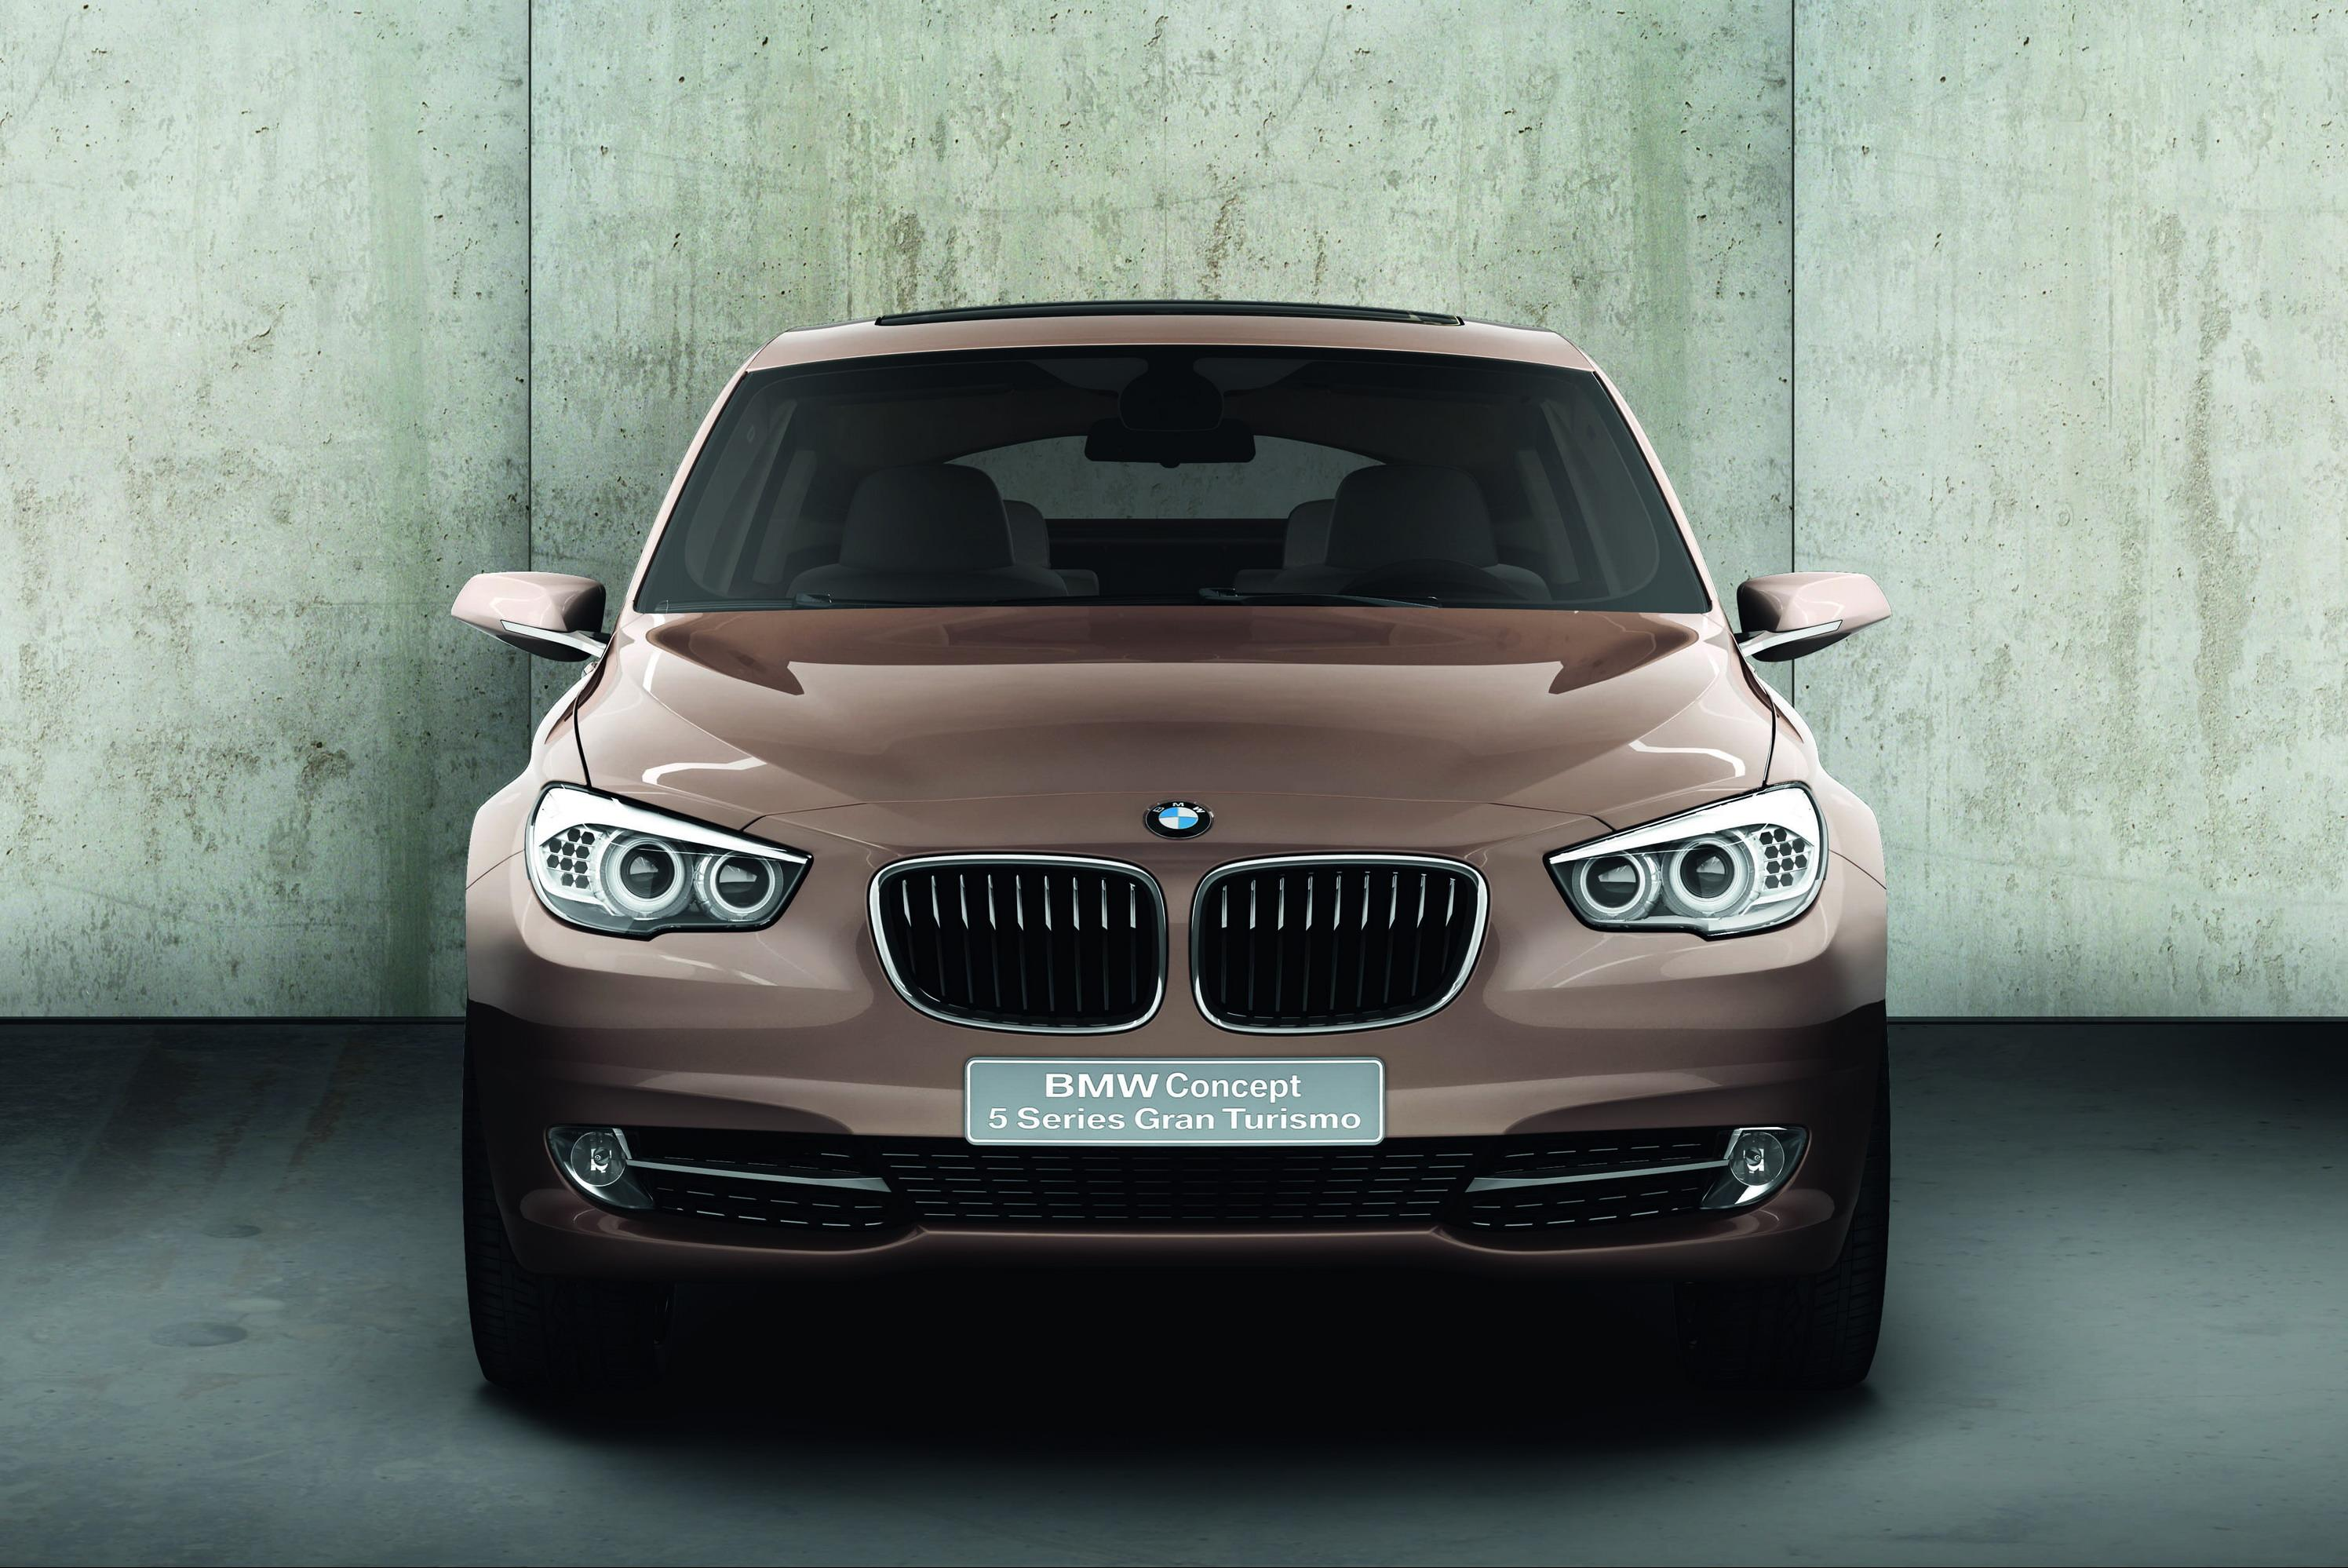 2009 BMW Concept 5 Series Gran Turismo | Top Speed